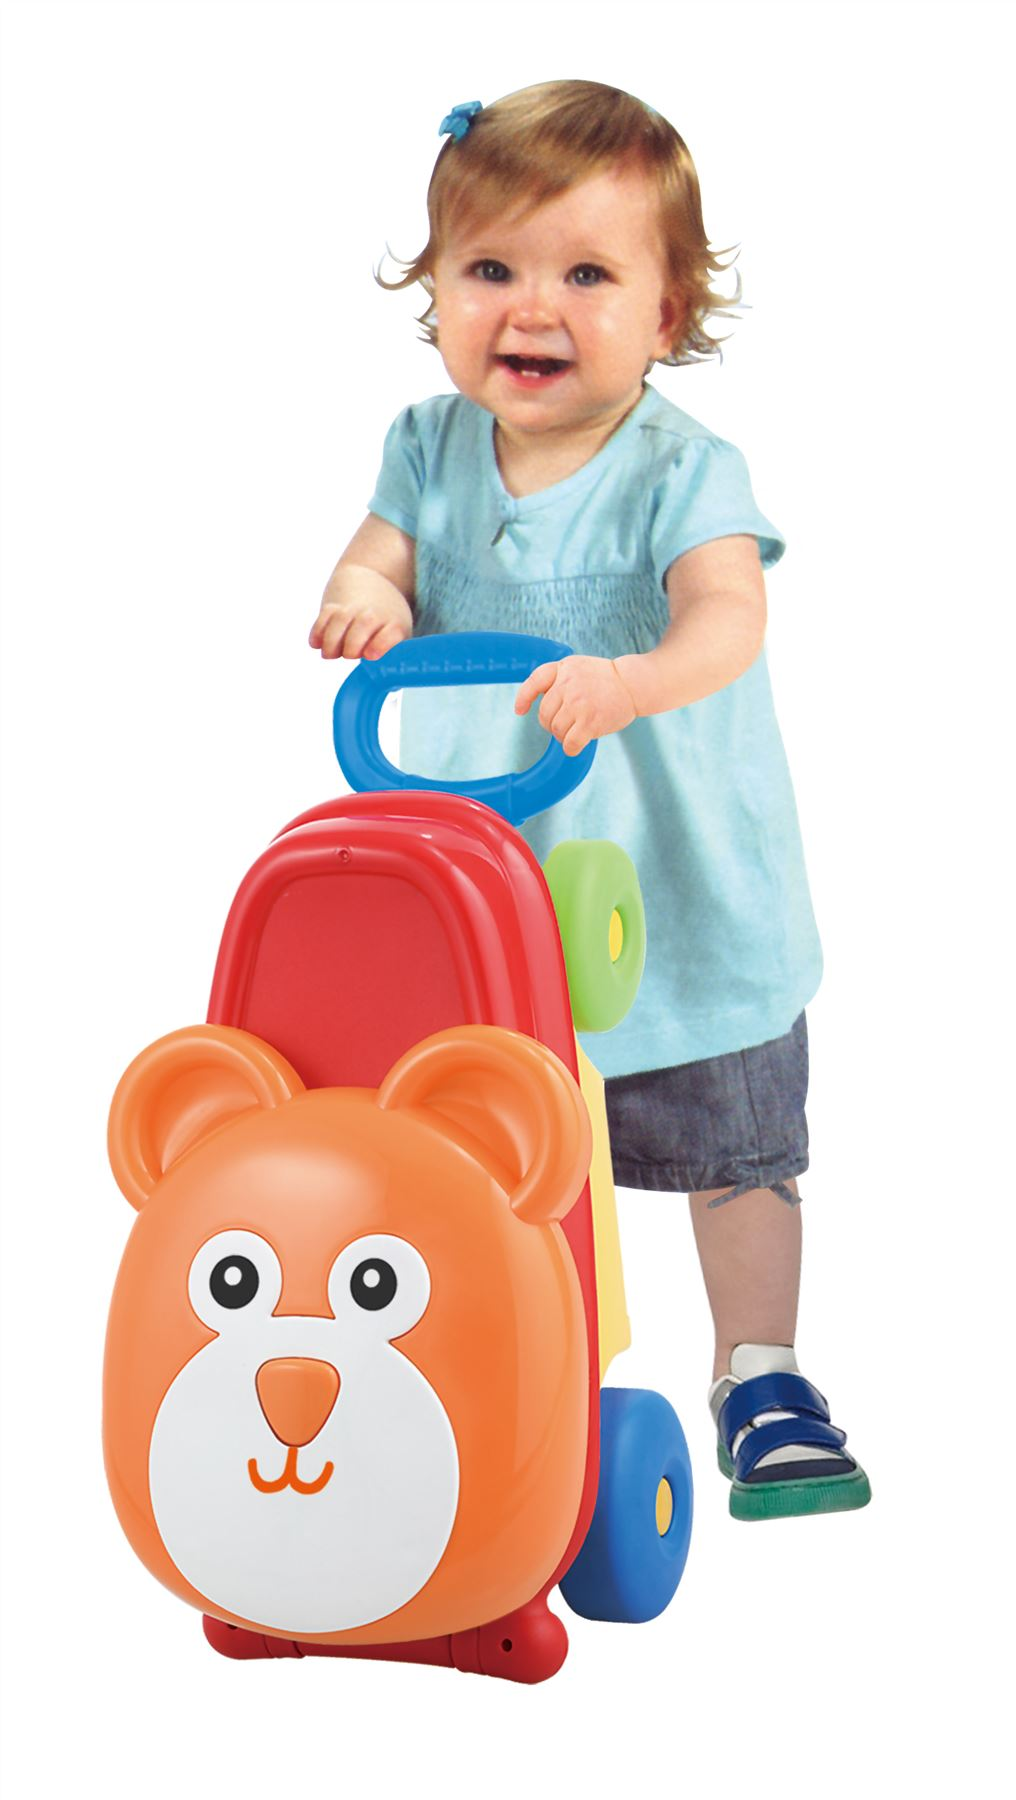 Benefits Of Ride On Toys : Vinsani children kids in push along sit ride toy